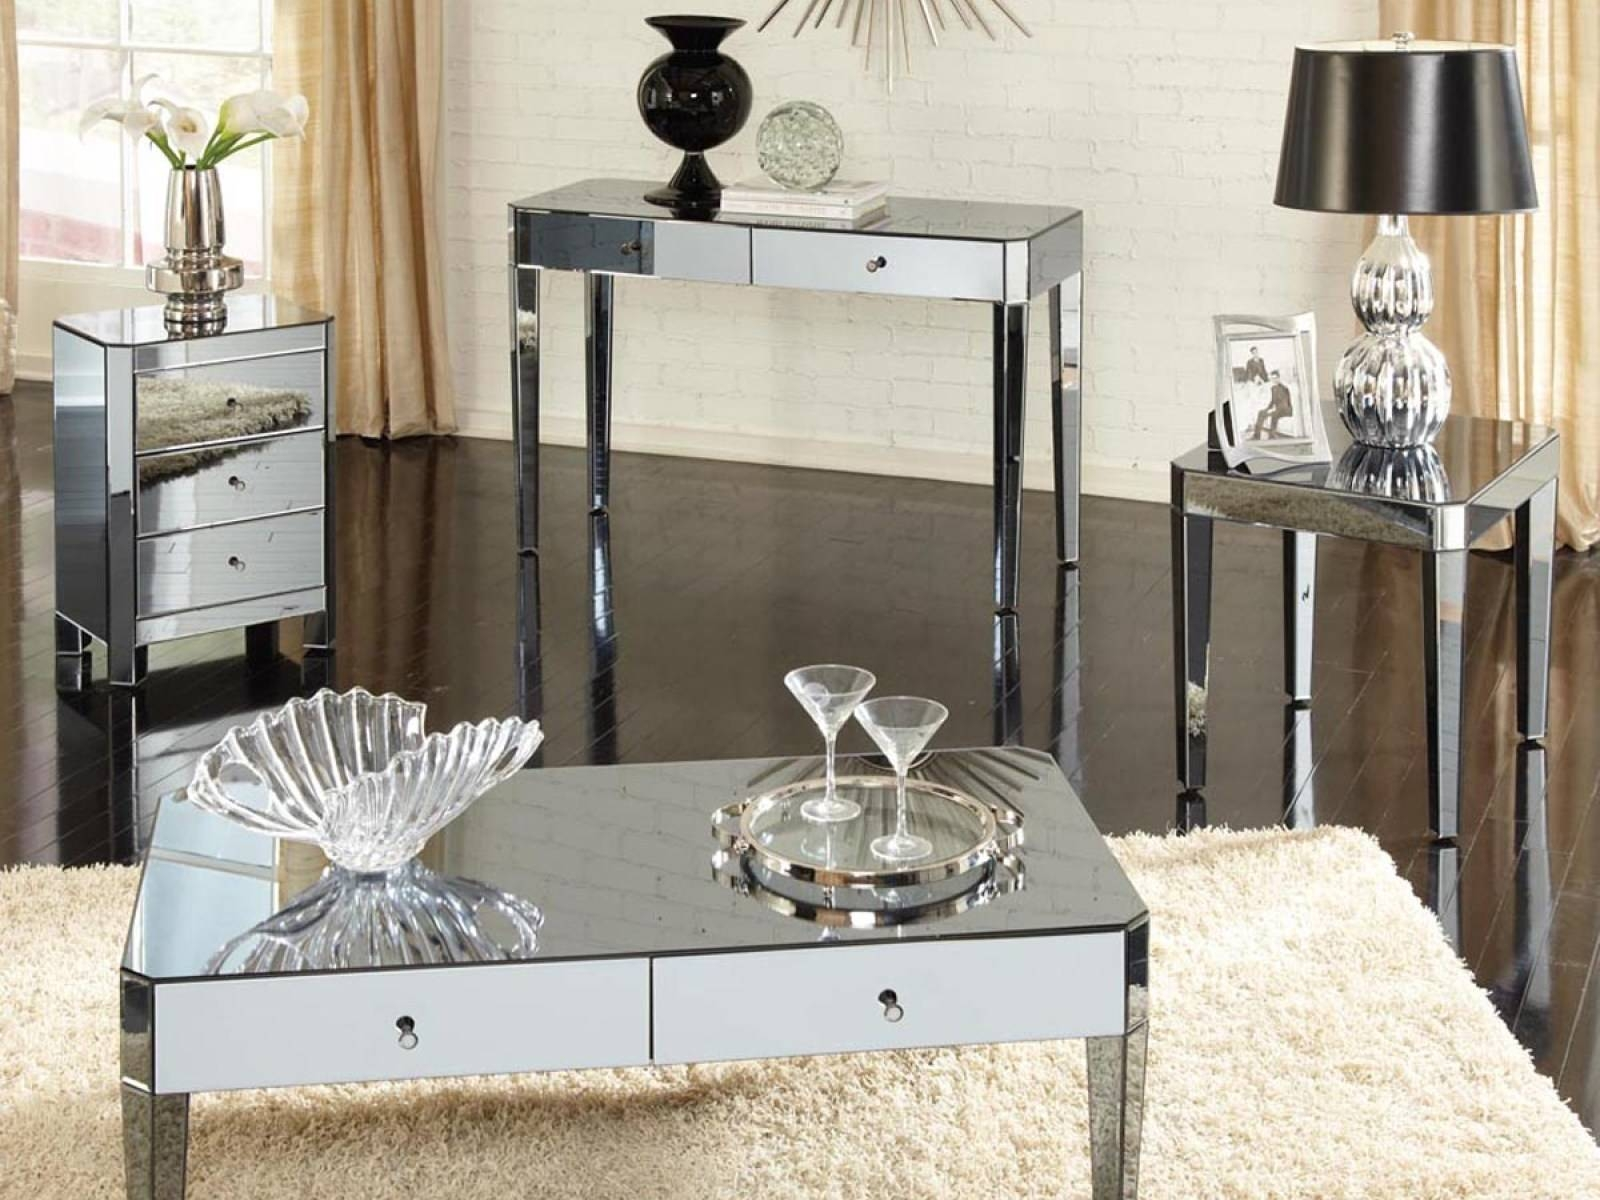 Coffee Table: Contemporary Mirrored Coffee Table Decor Table intended for Mirrored Coffee Tables (Image 4 of 30)